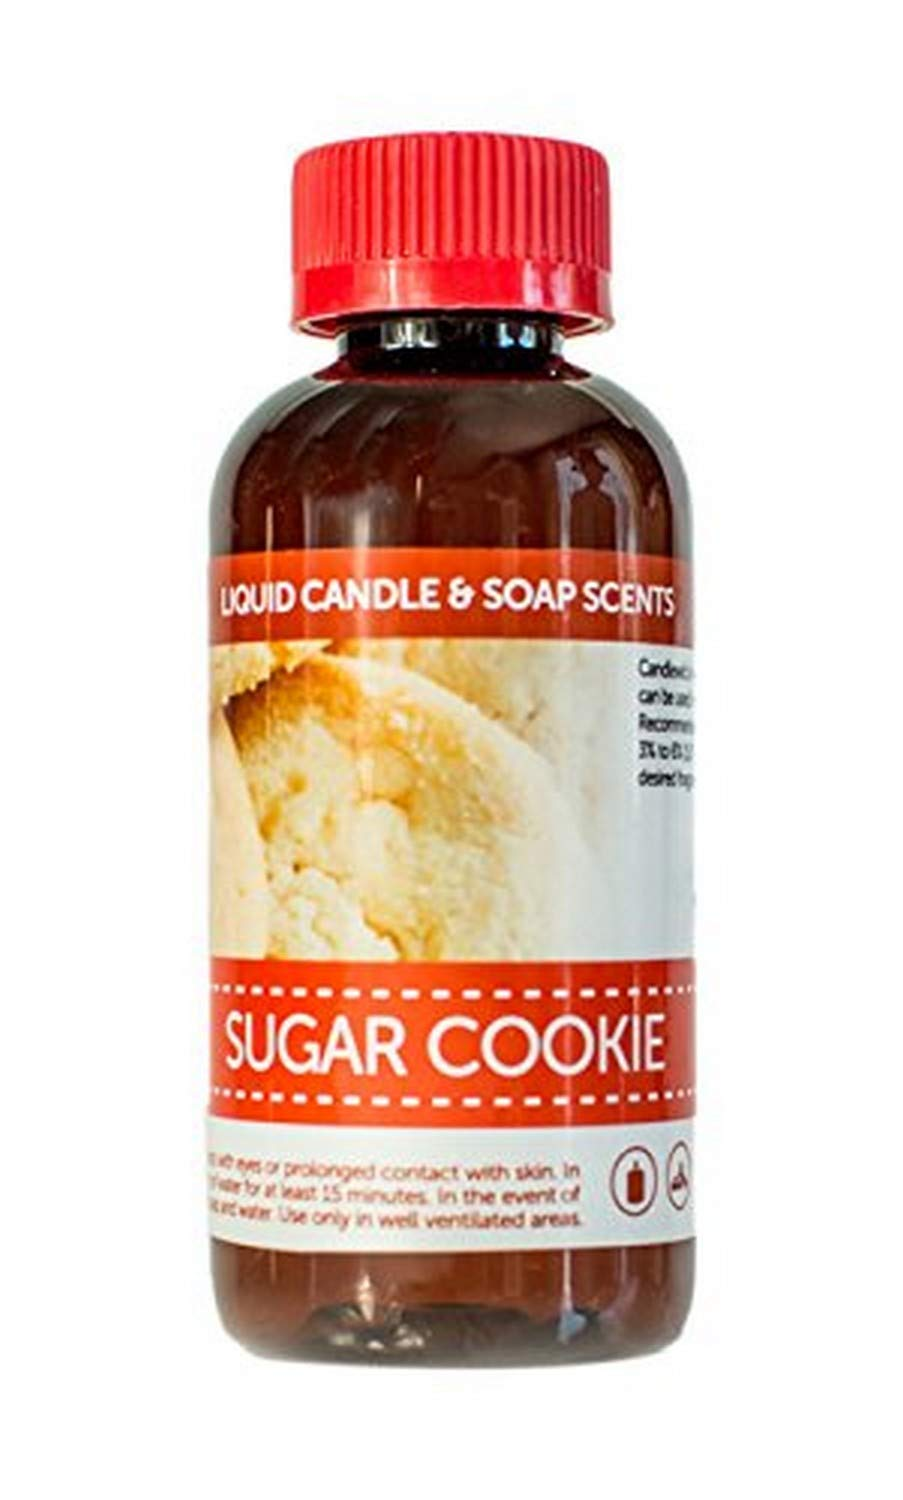 Candlewic Sugar Cookie Candle & Soap Fragrance, 4 oz